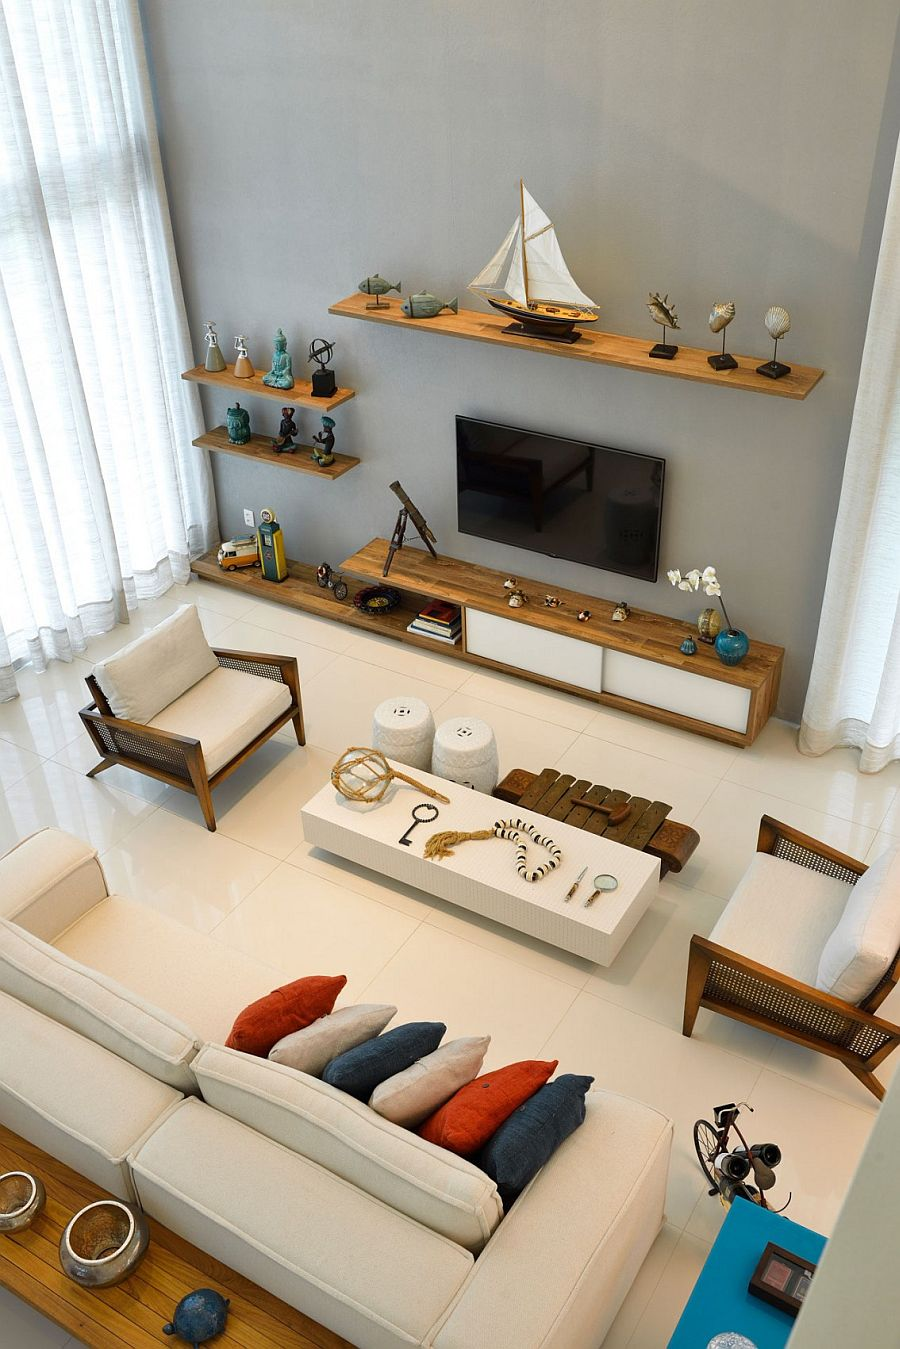 Floating wooden shelves in the living room with nautical themed decoration